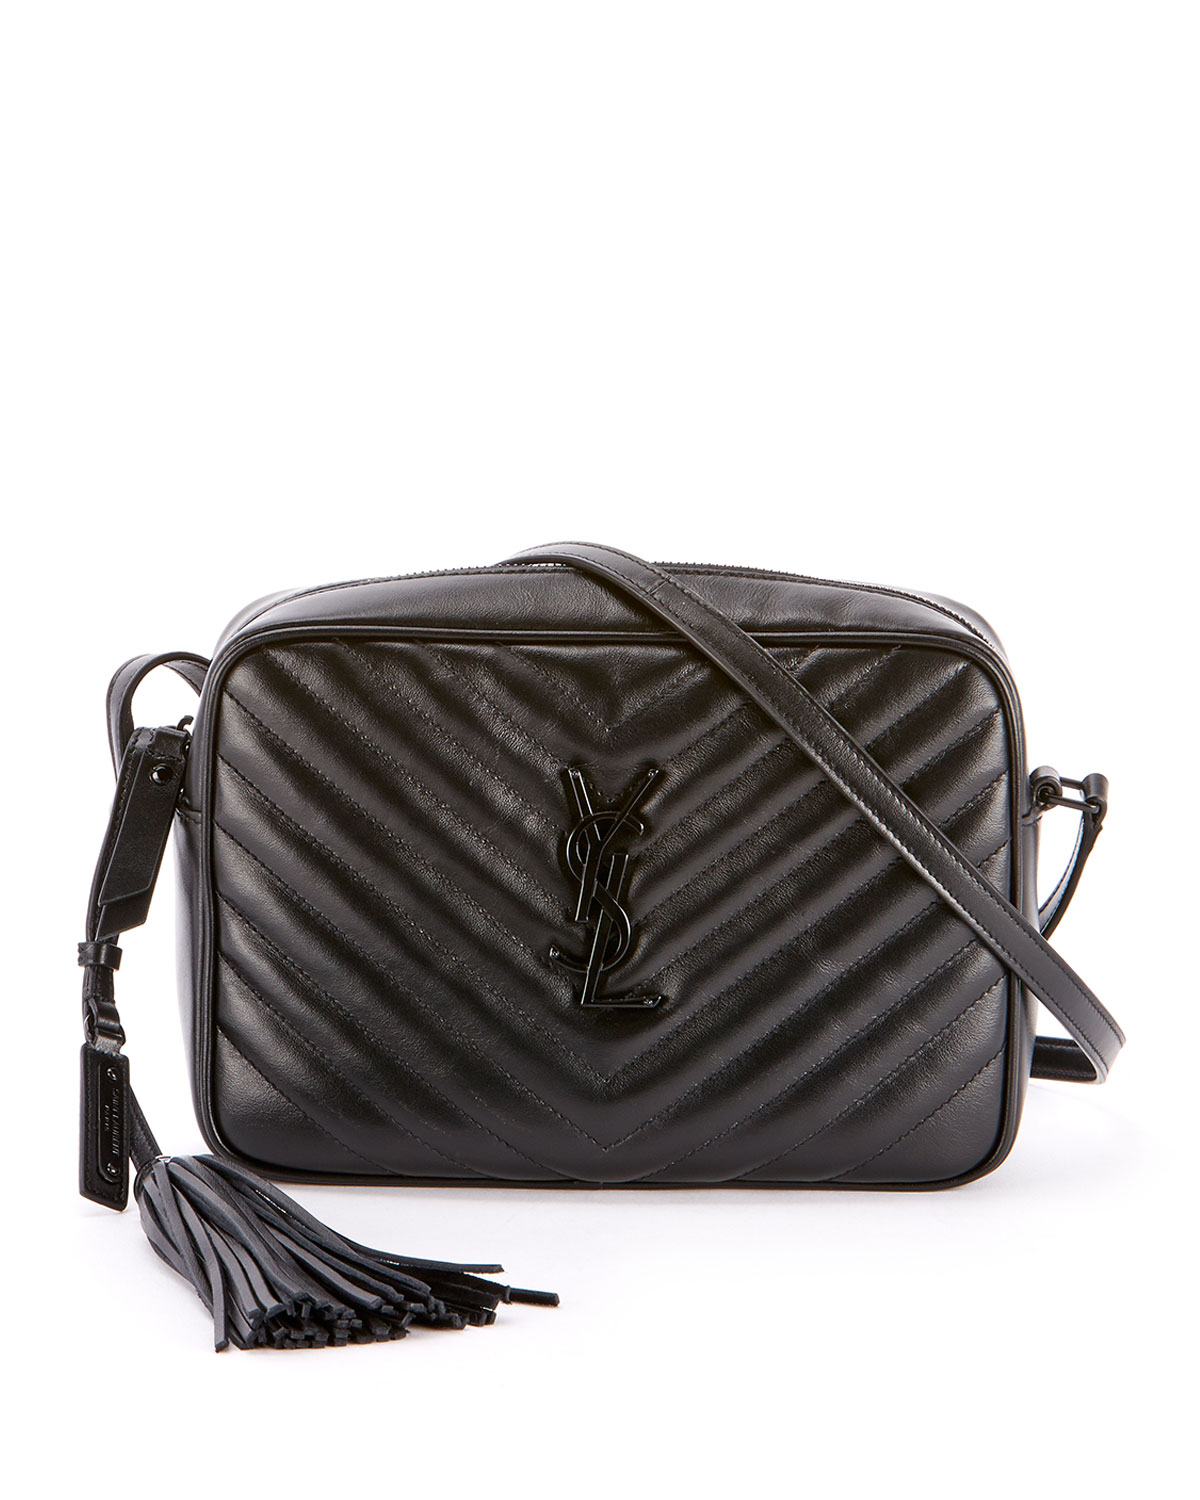 02e94623cfed Saint LaurentLoulou Monogram YSL Medium Chevron Quilted Leather Camera Shoulder  Bag - Black Hardware